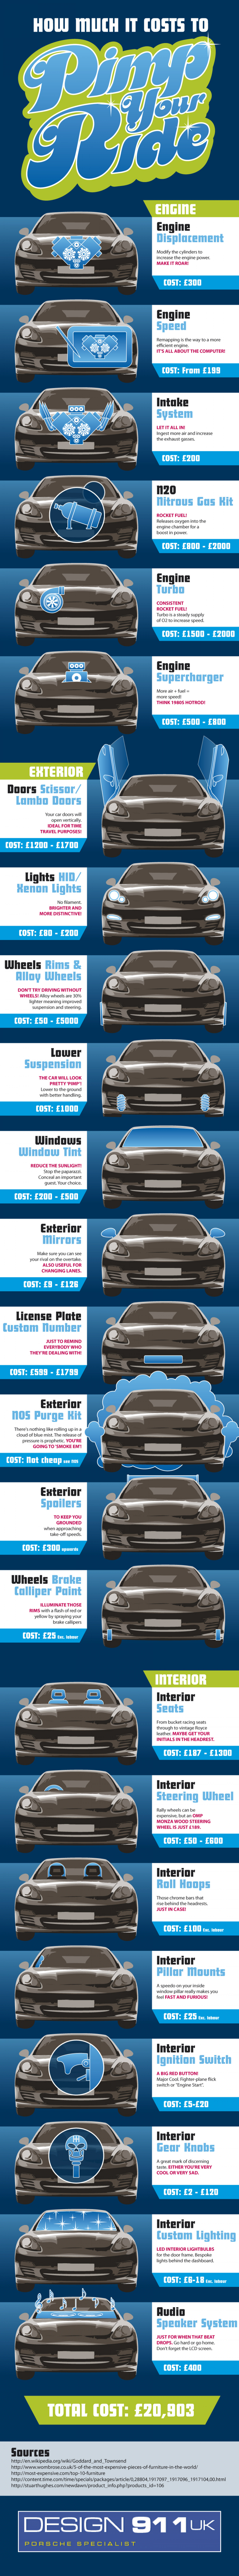 The Cost of Pimping Your Ride Infographic